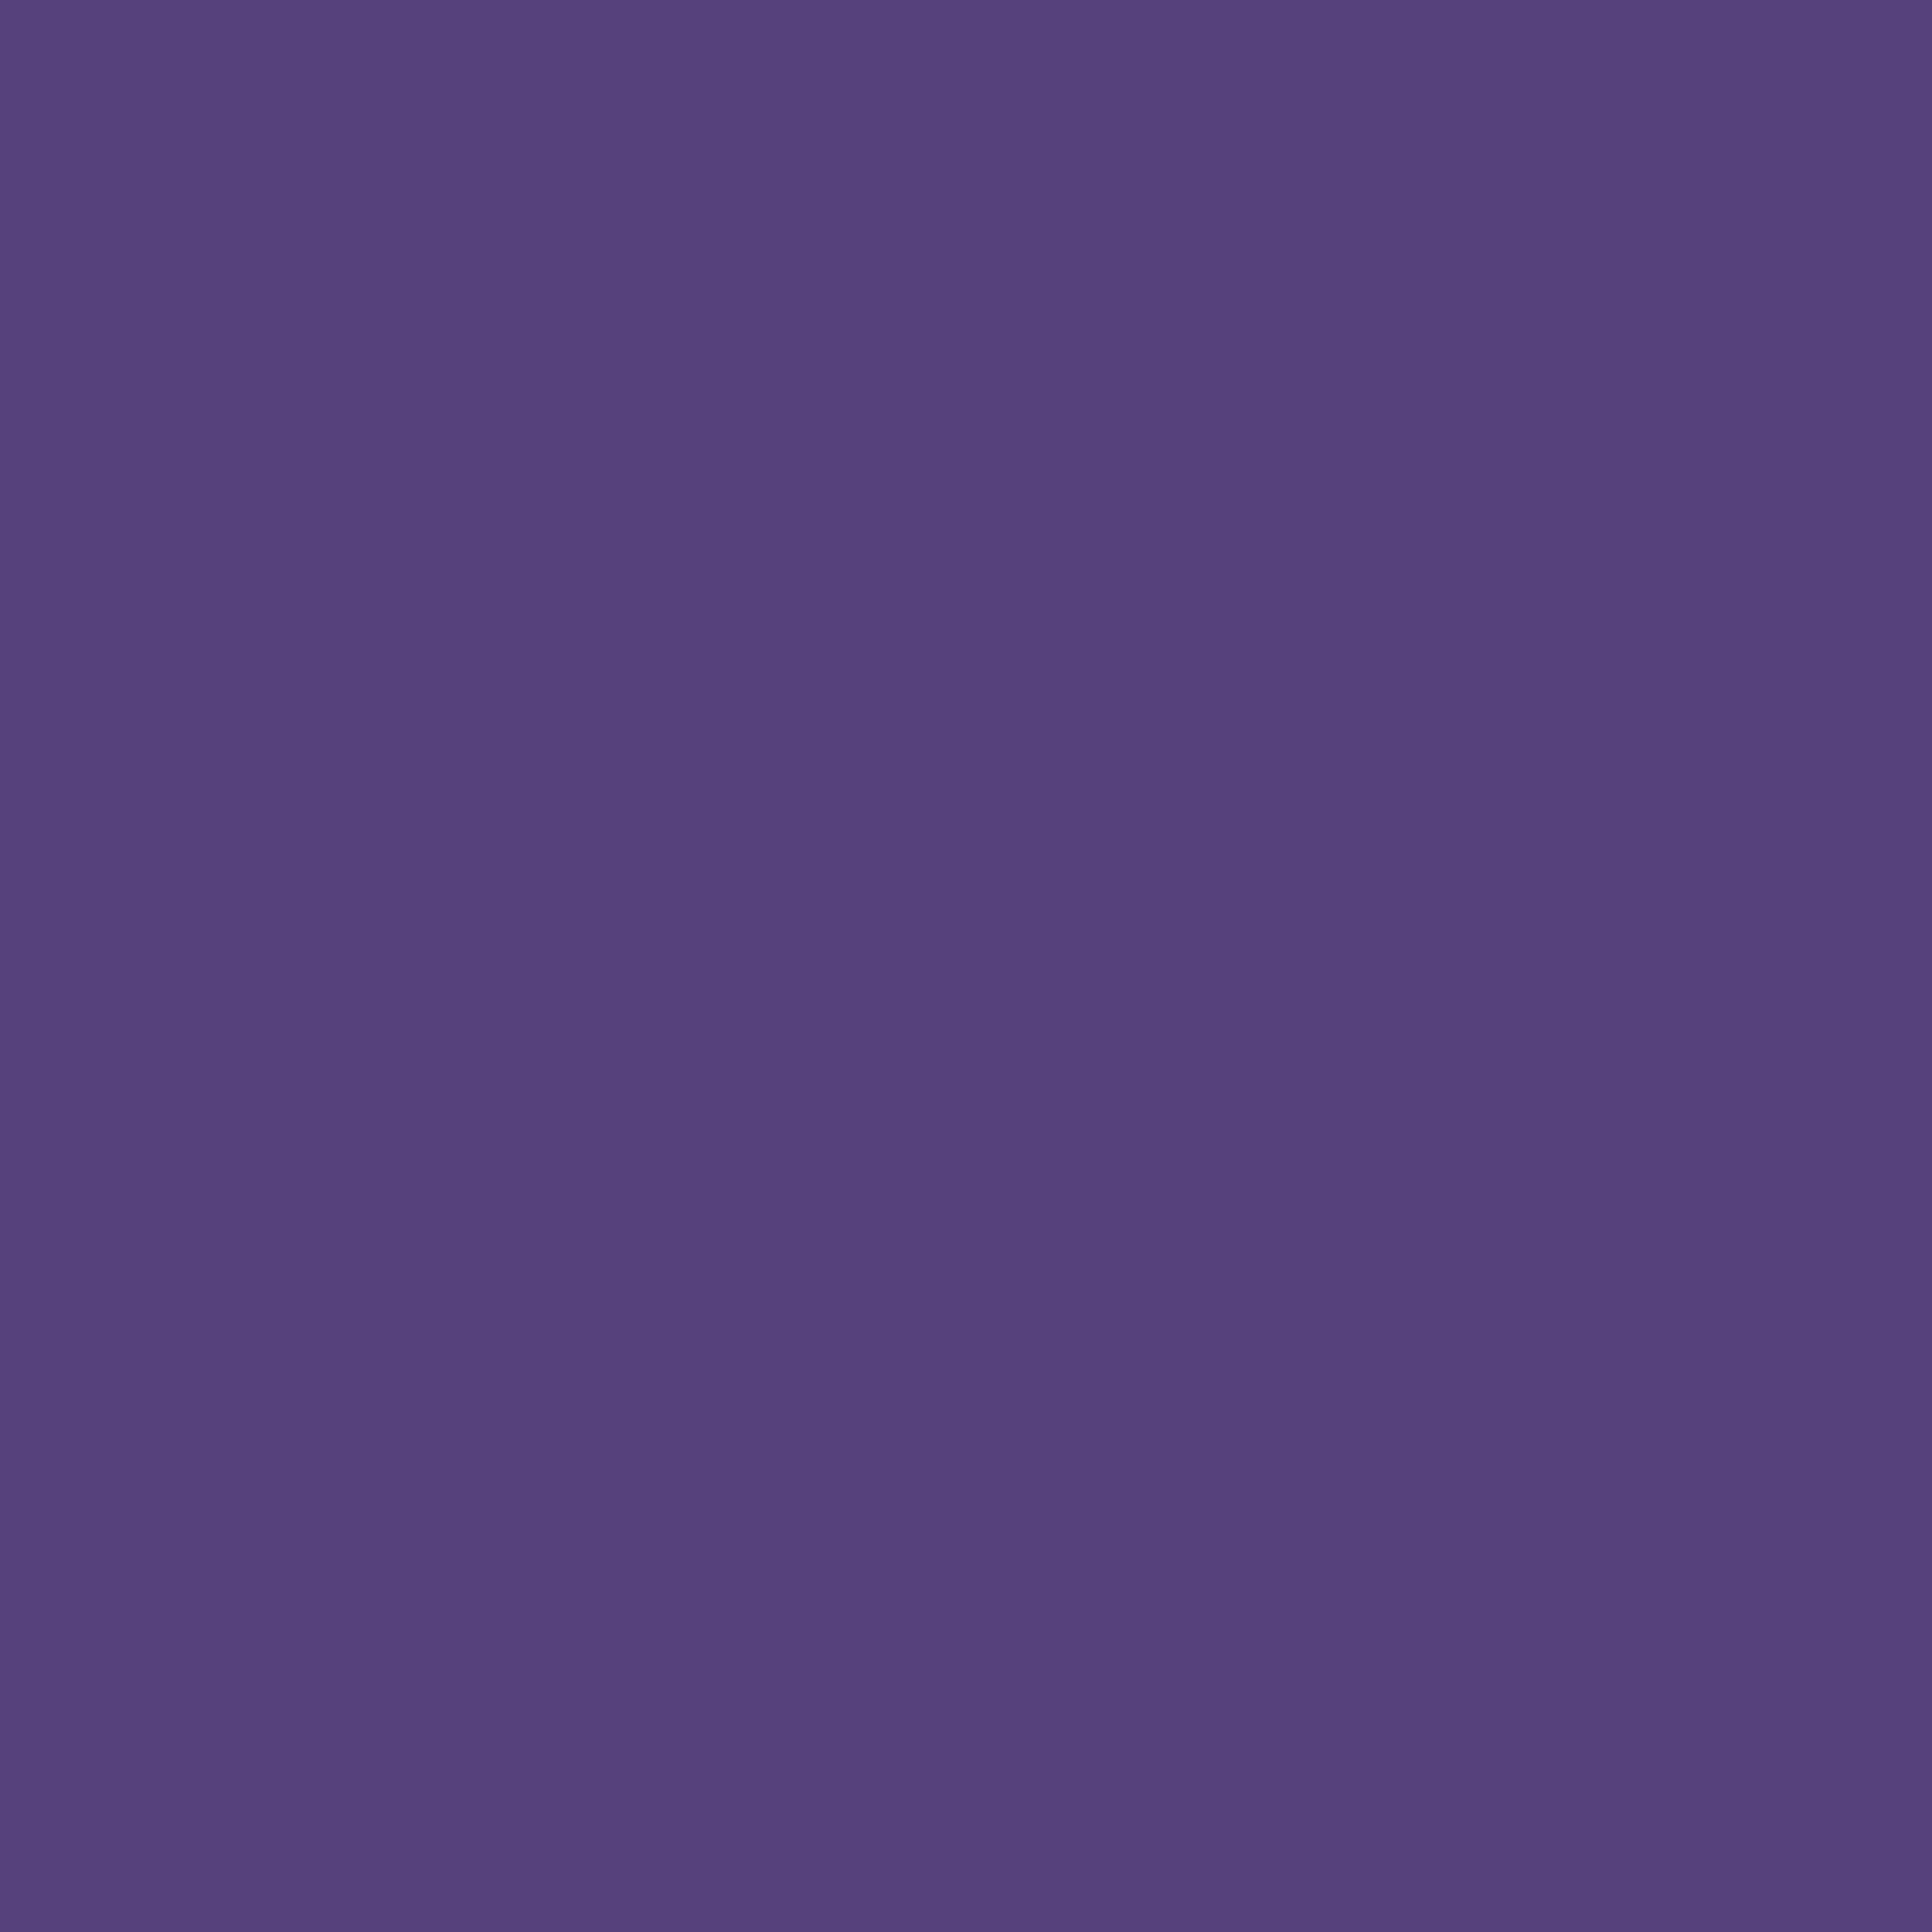 3600x3600 Cyber Grape Solid Color Background